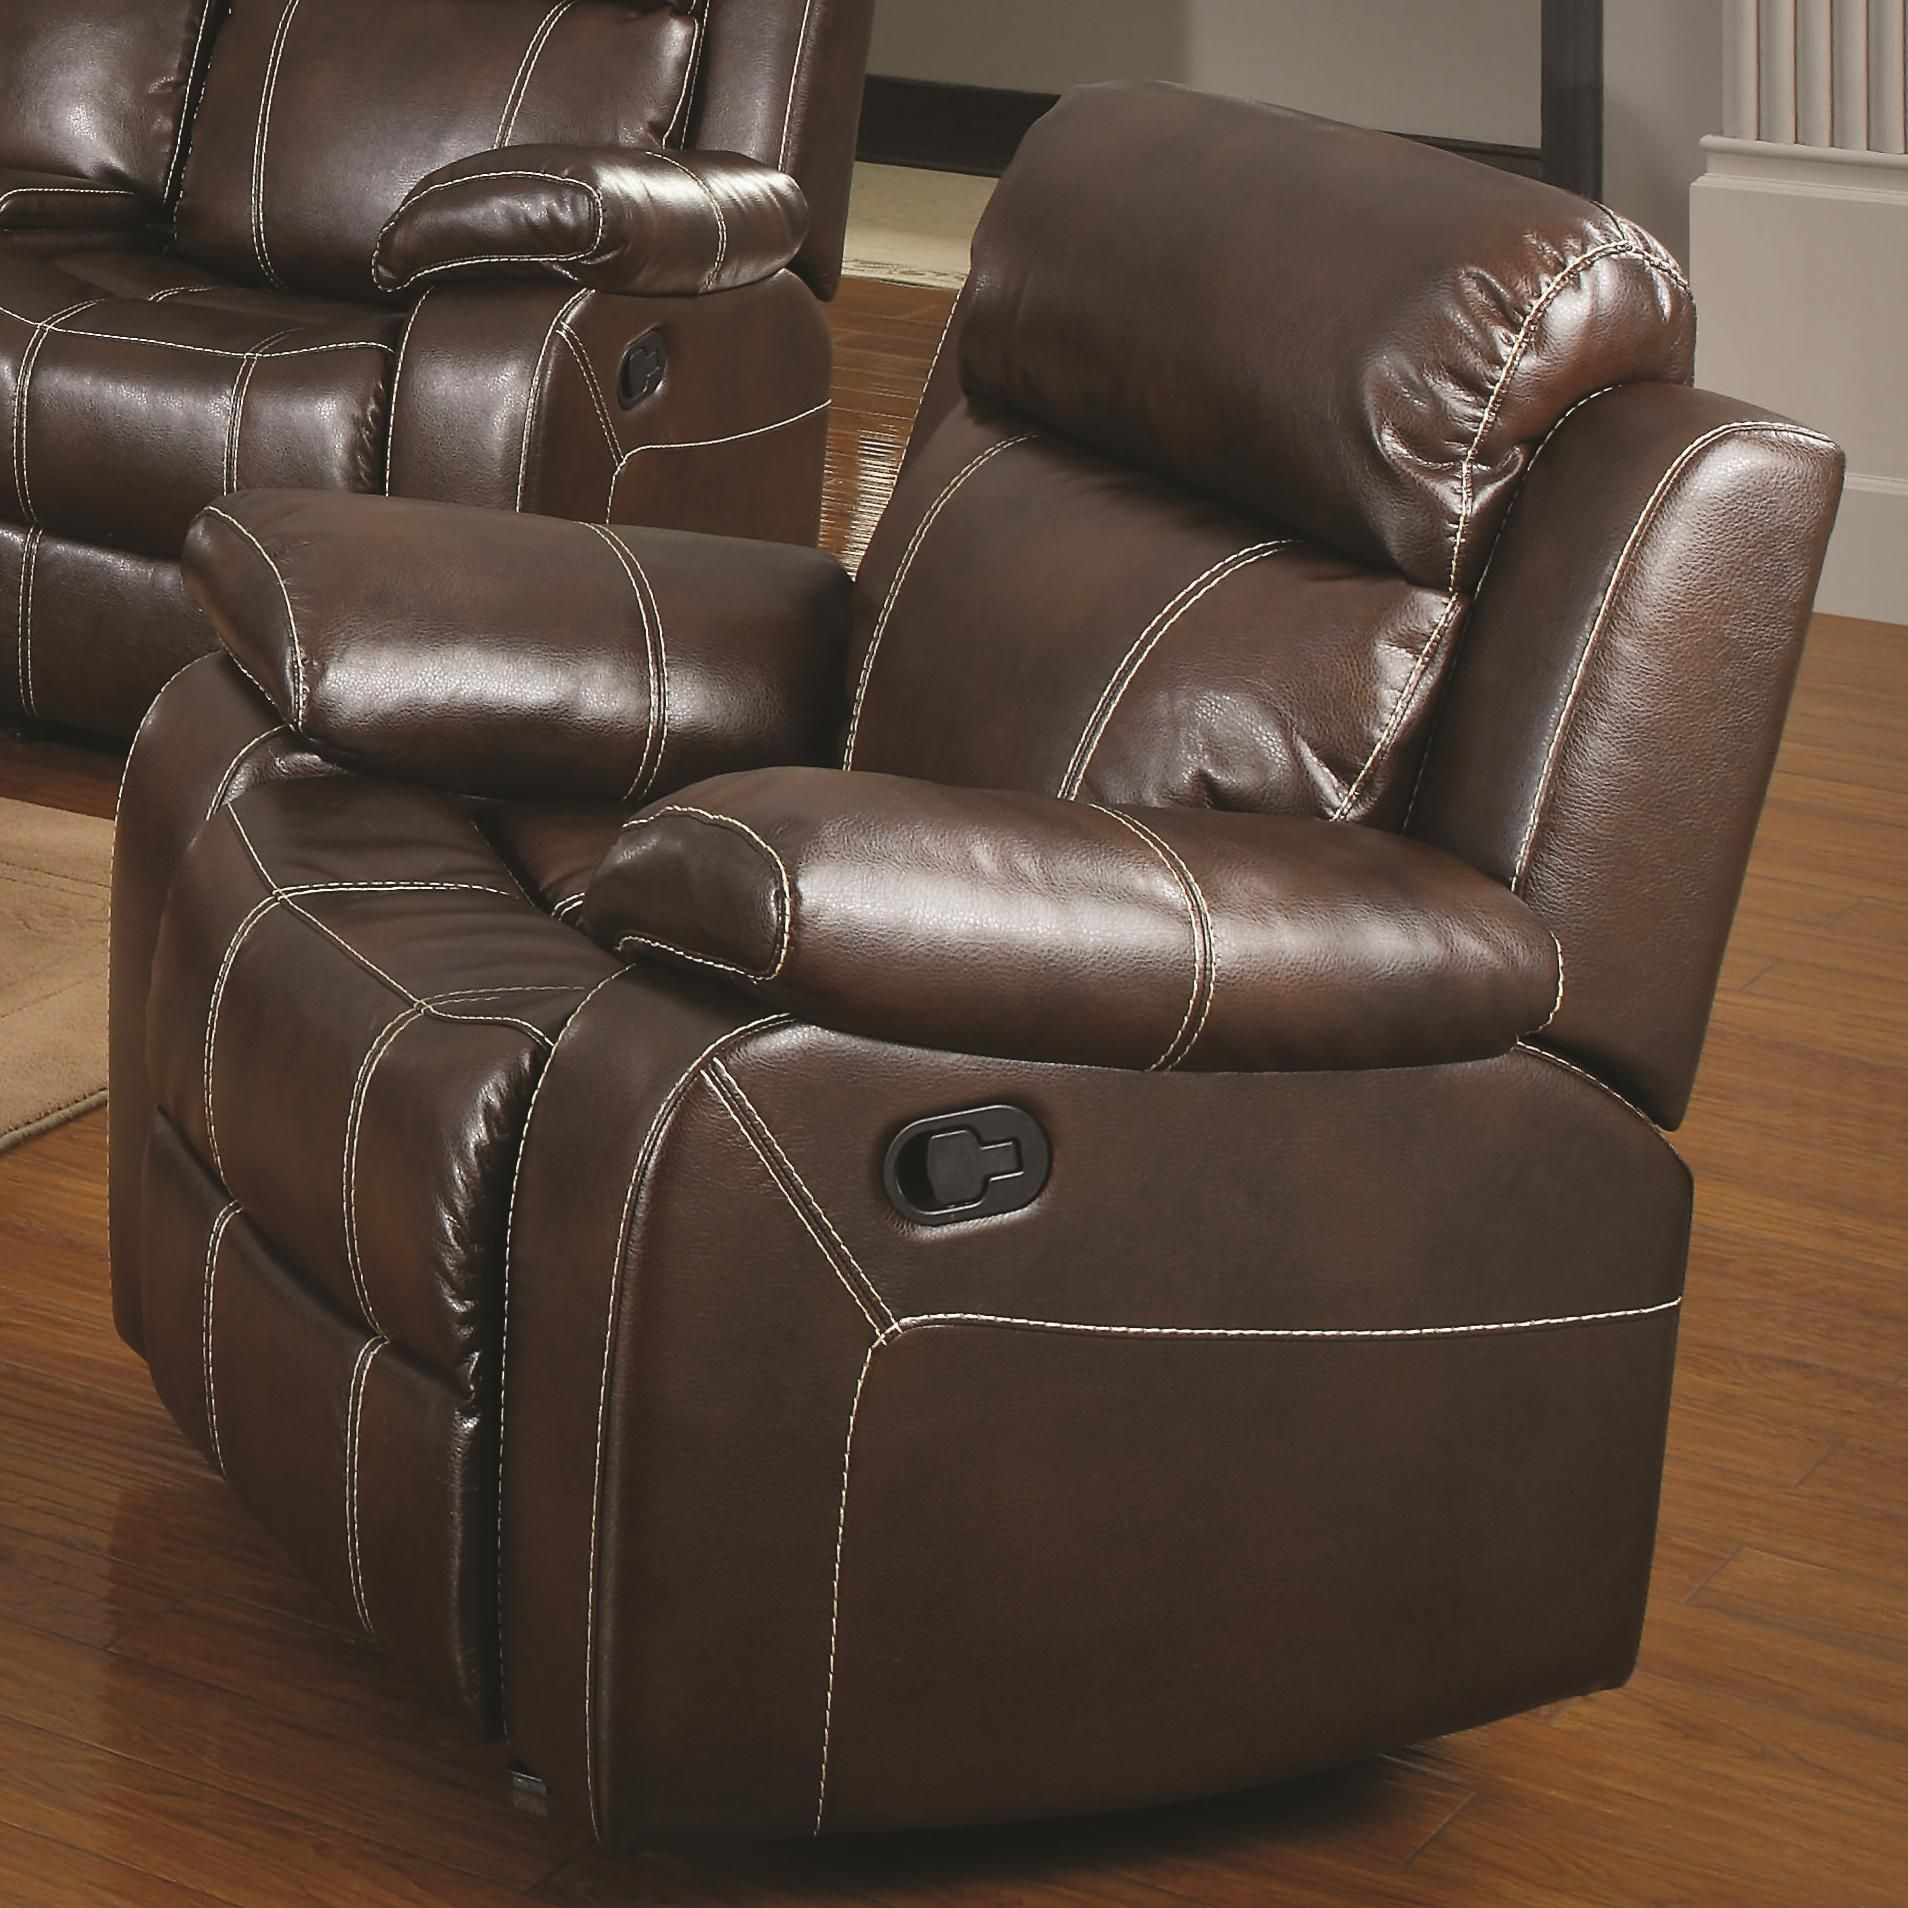 Chair Pillow With Arms - Leather recliner with pillow arms